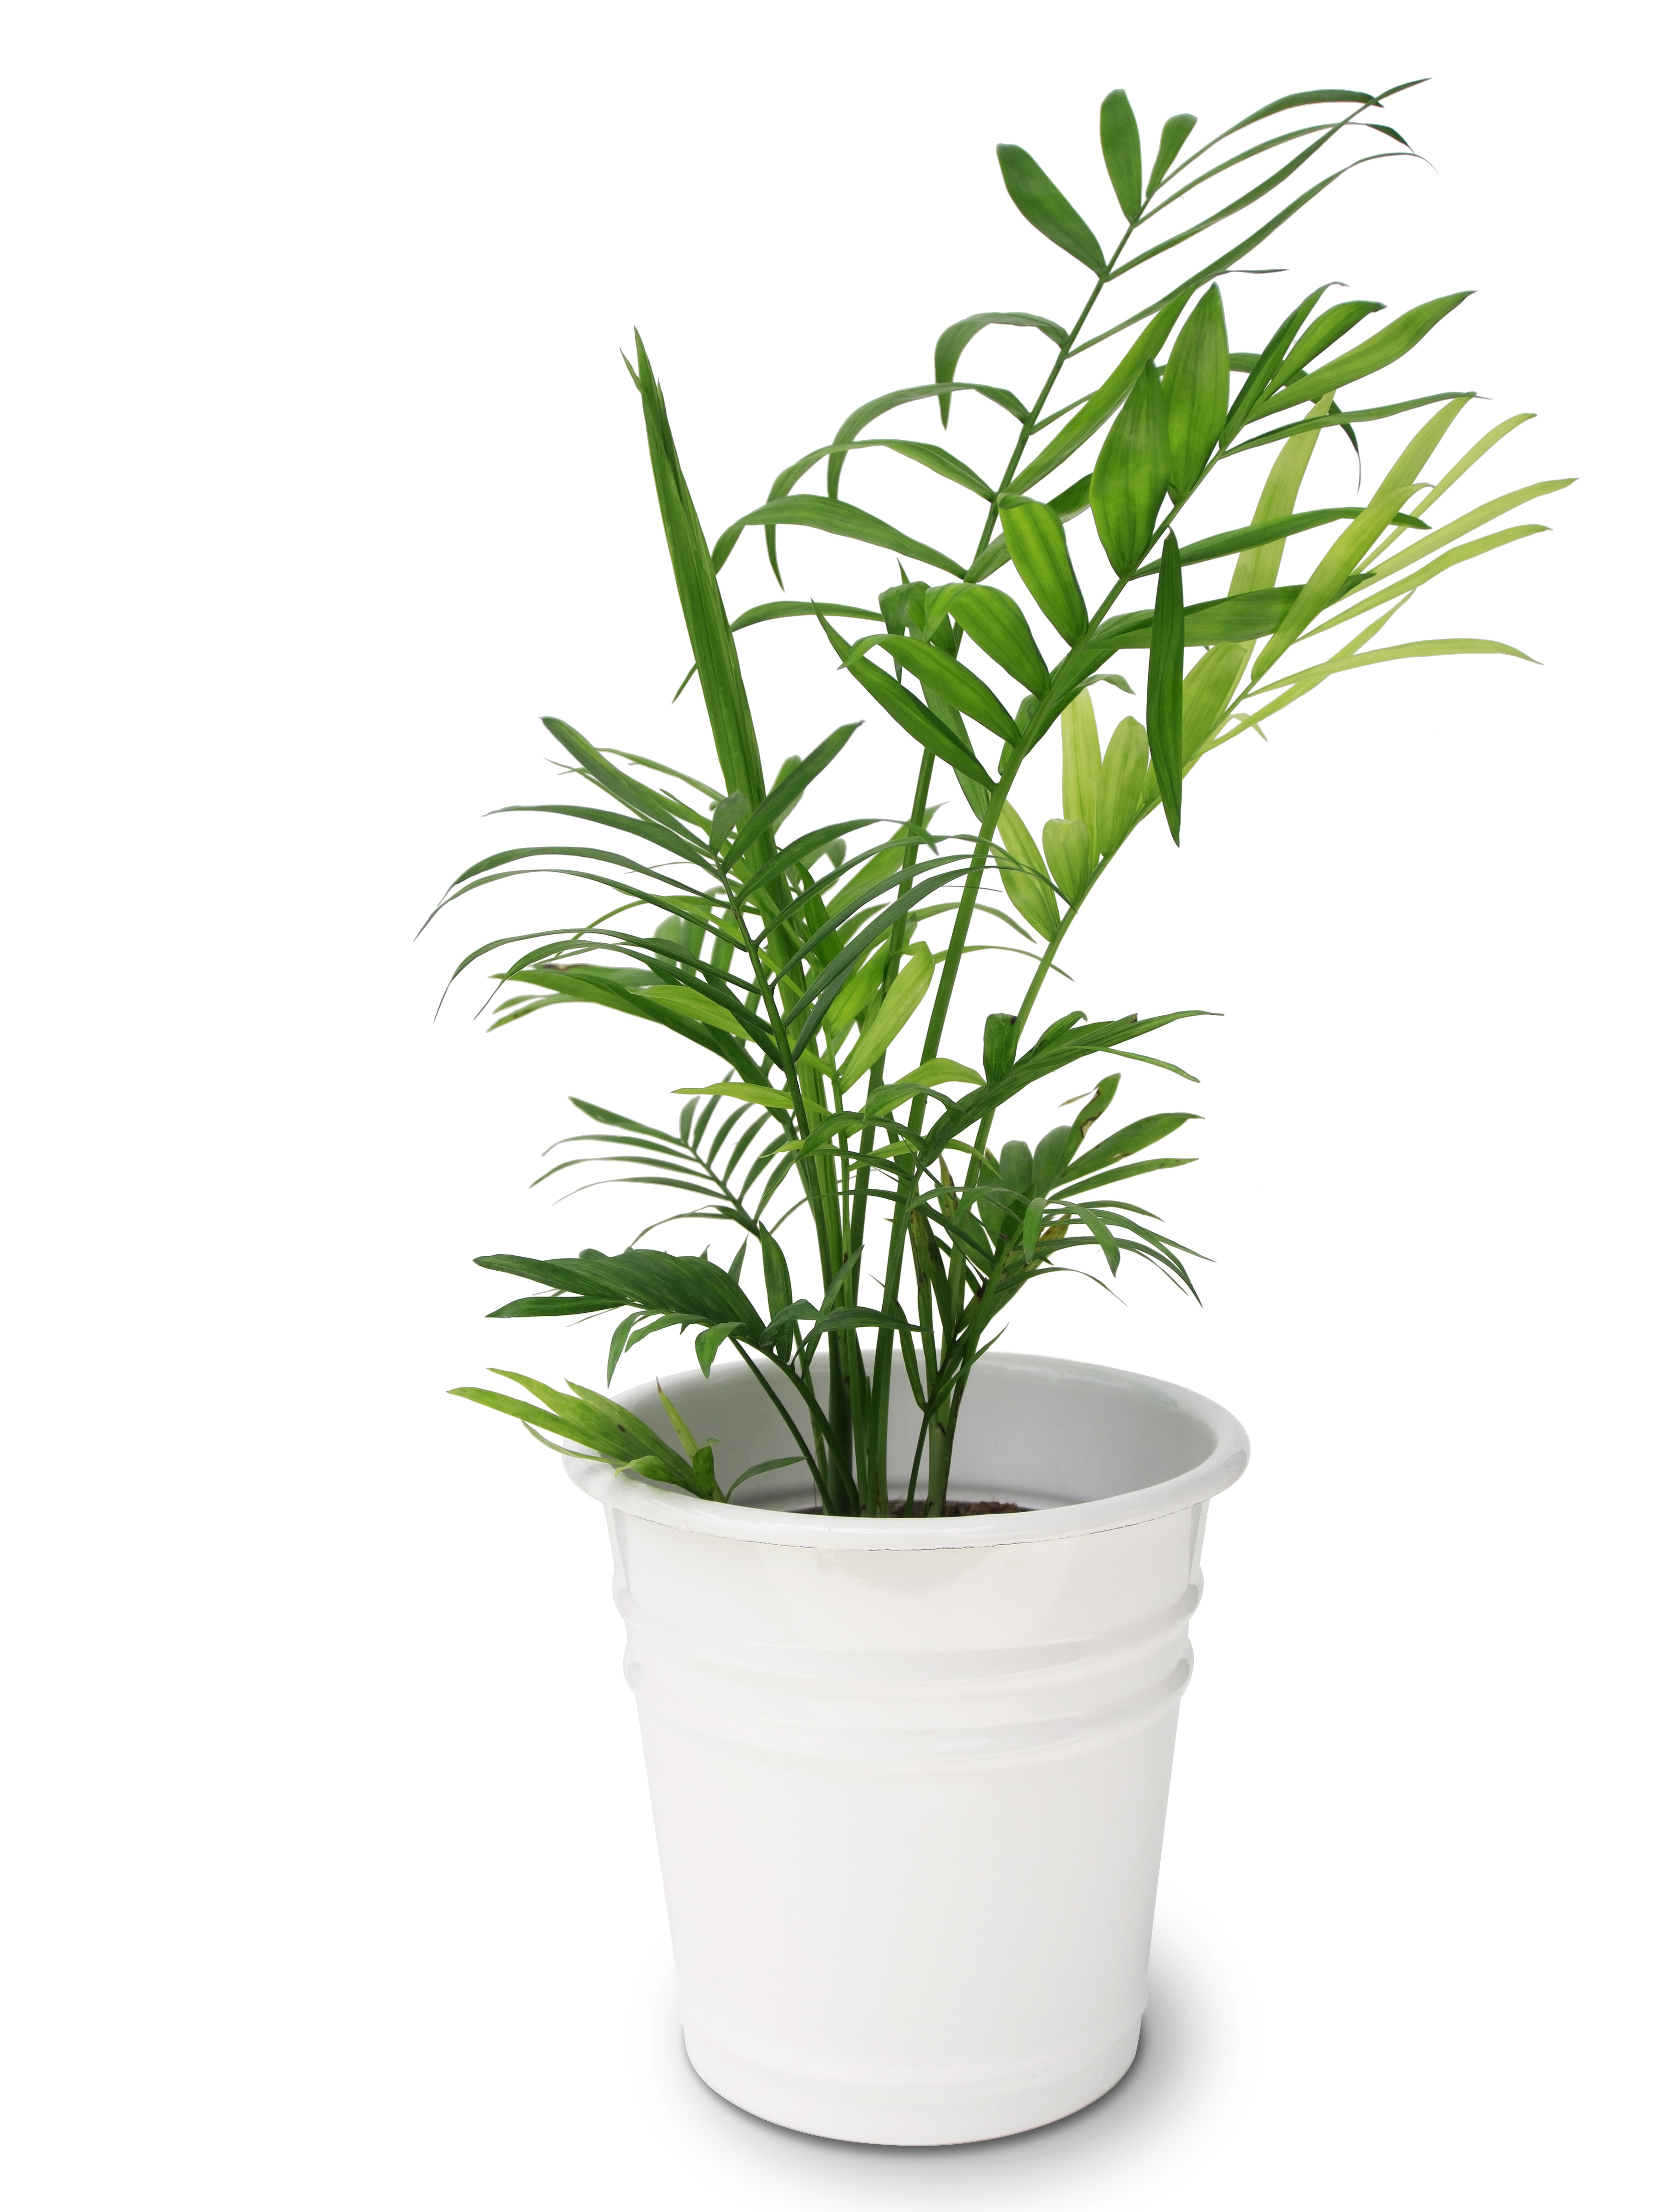 11 House Plants Safe For Cats And Dogs The Organic Goat Lady